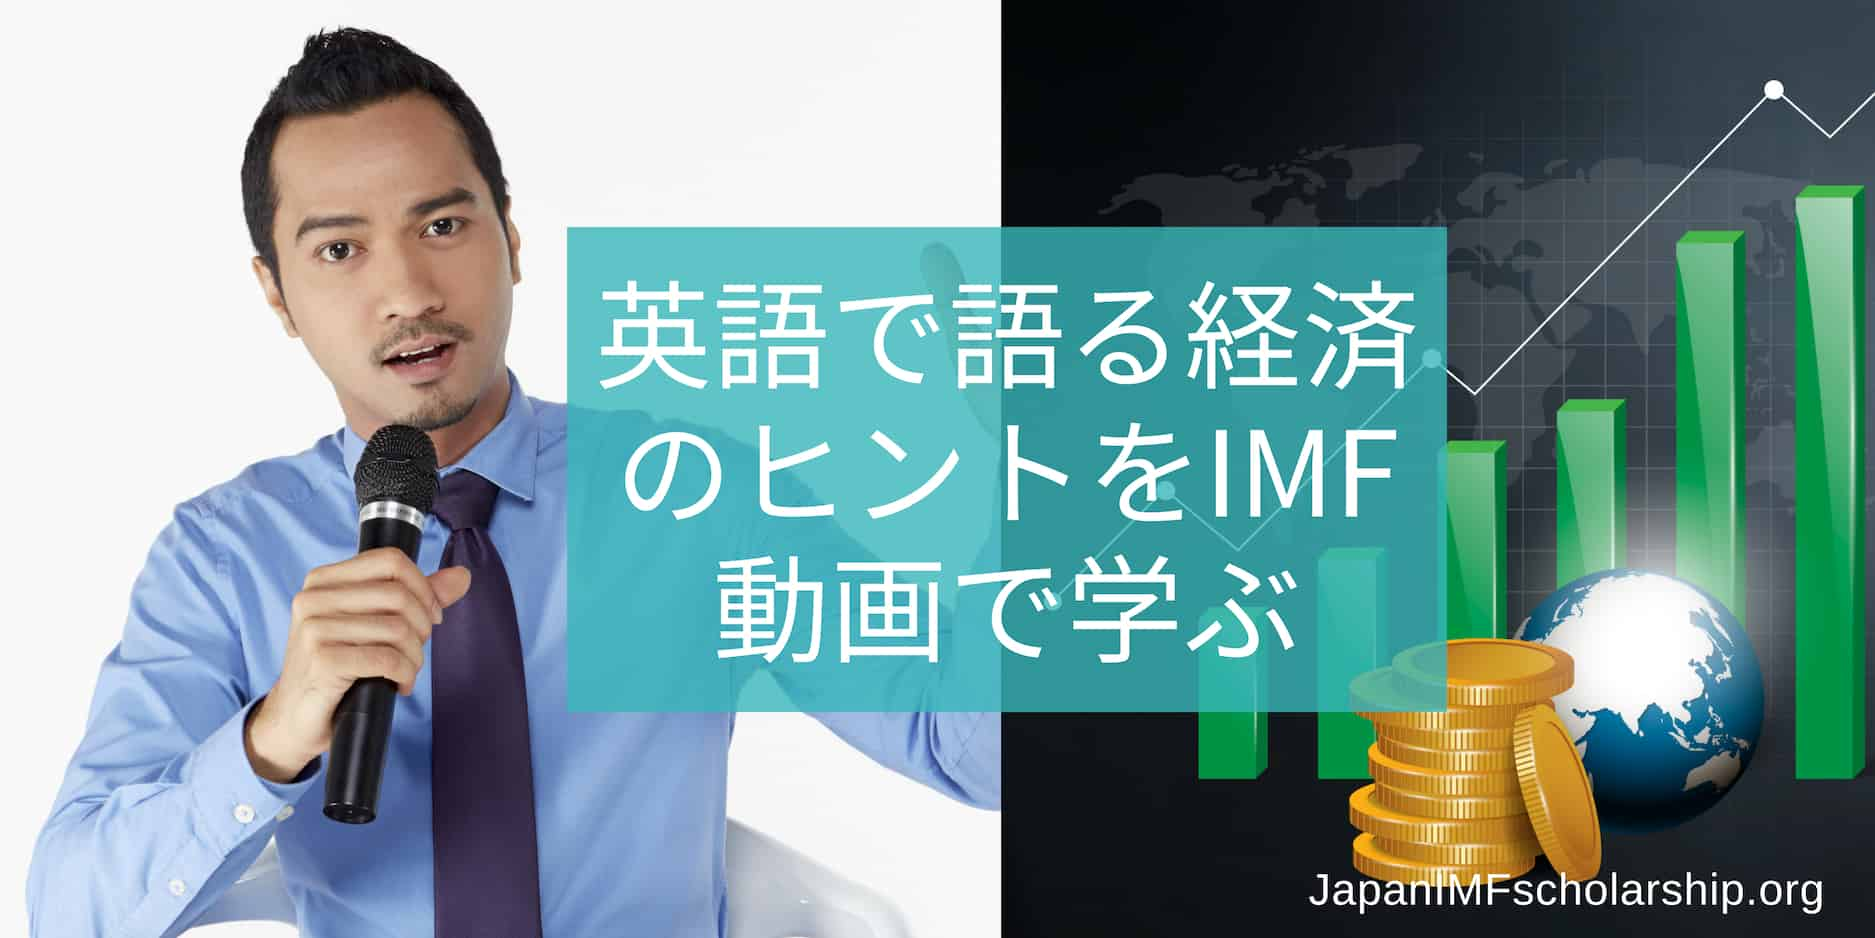 jisp explanation about economics in english by IMF video 3